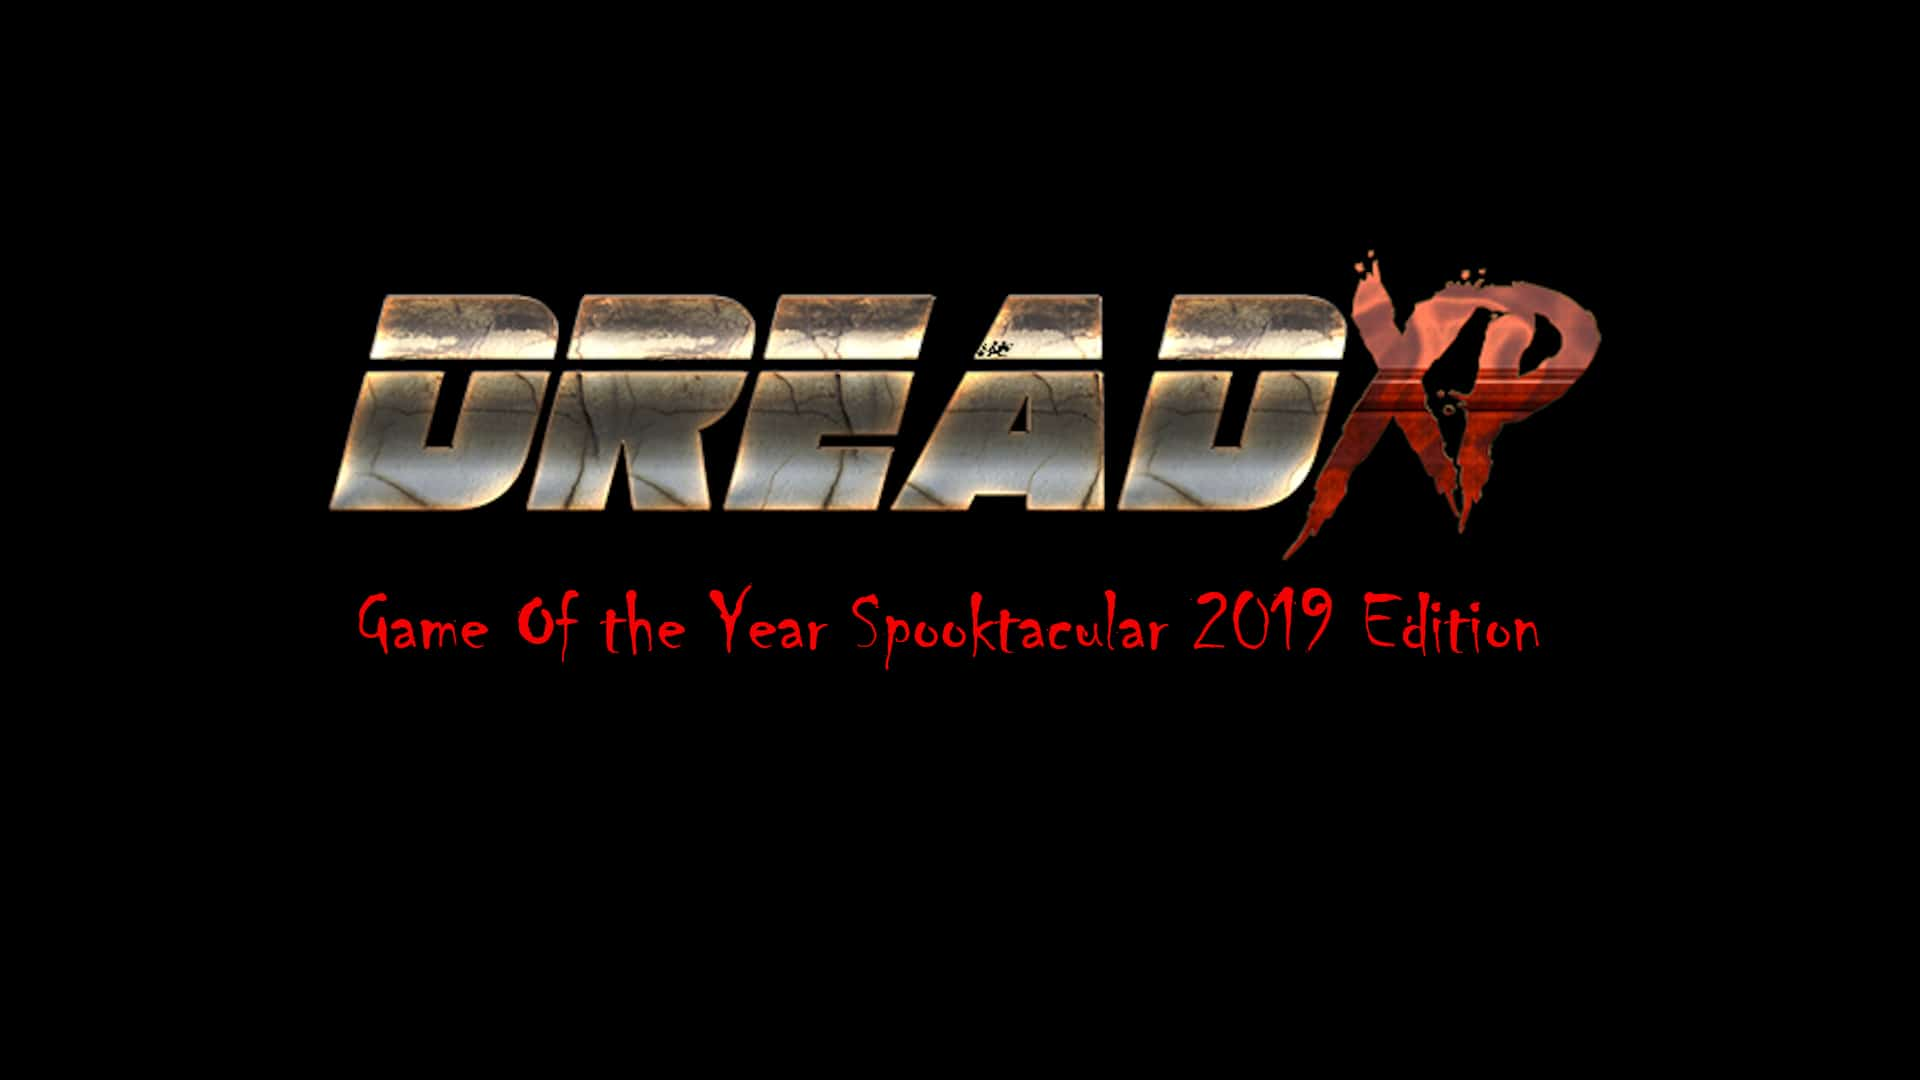 DreadXP GOTY 2019 2 - DreadXP Game of the Year List 2019 - Special Awards